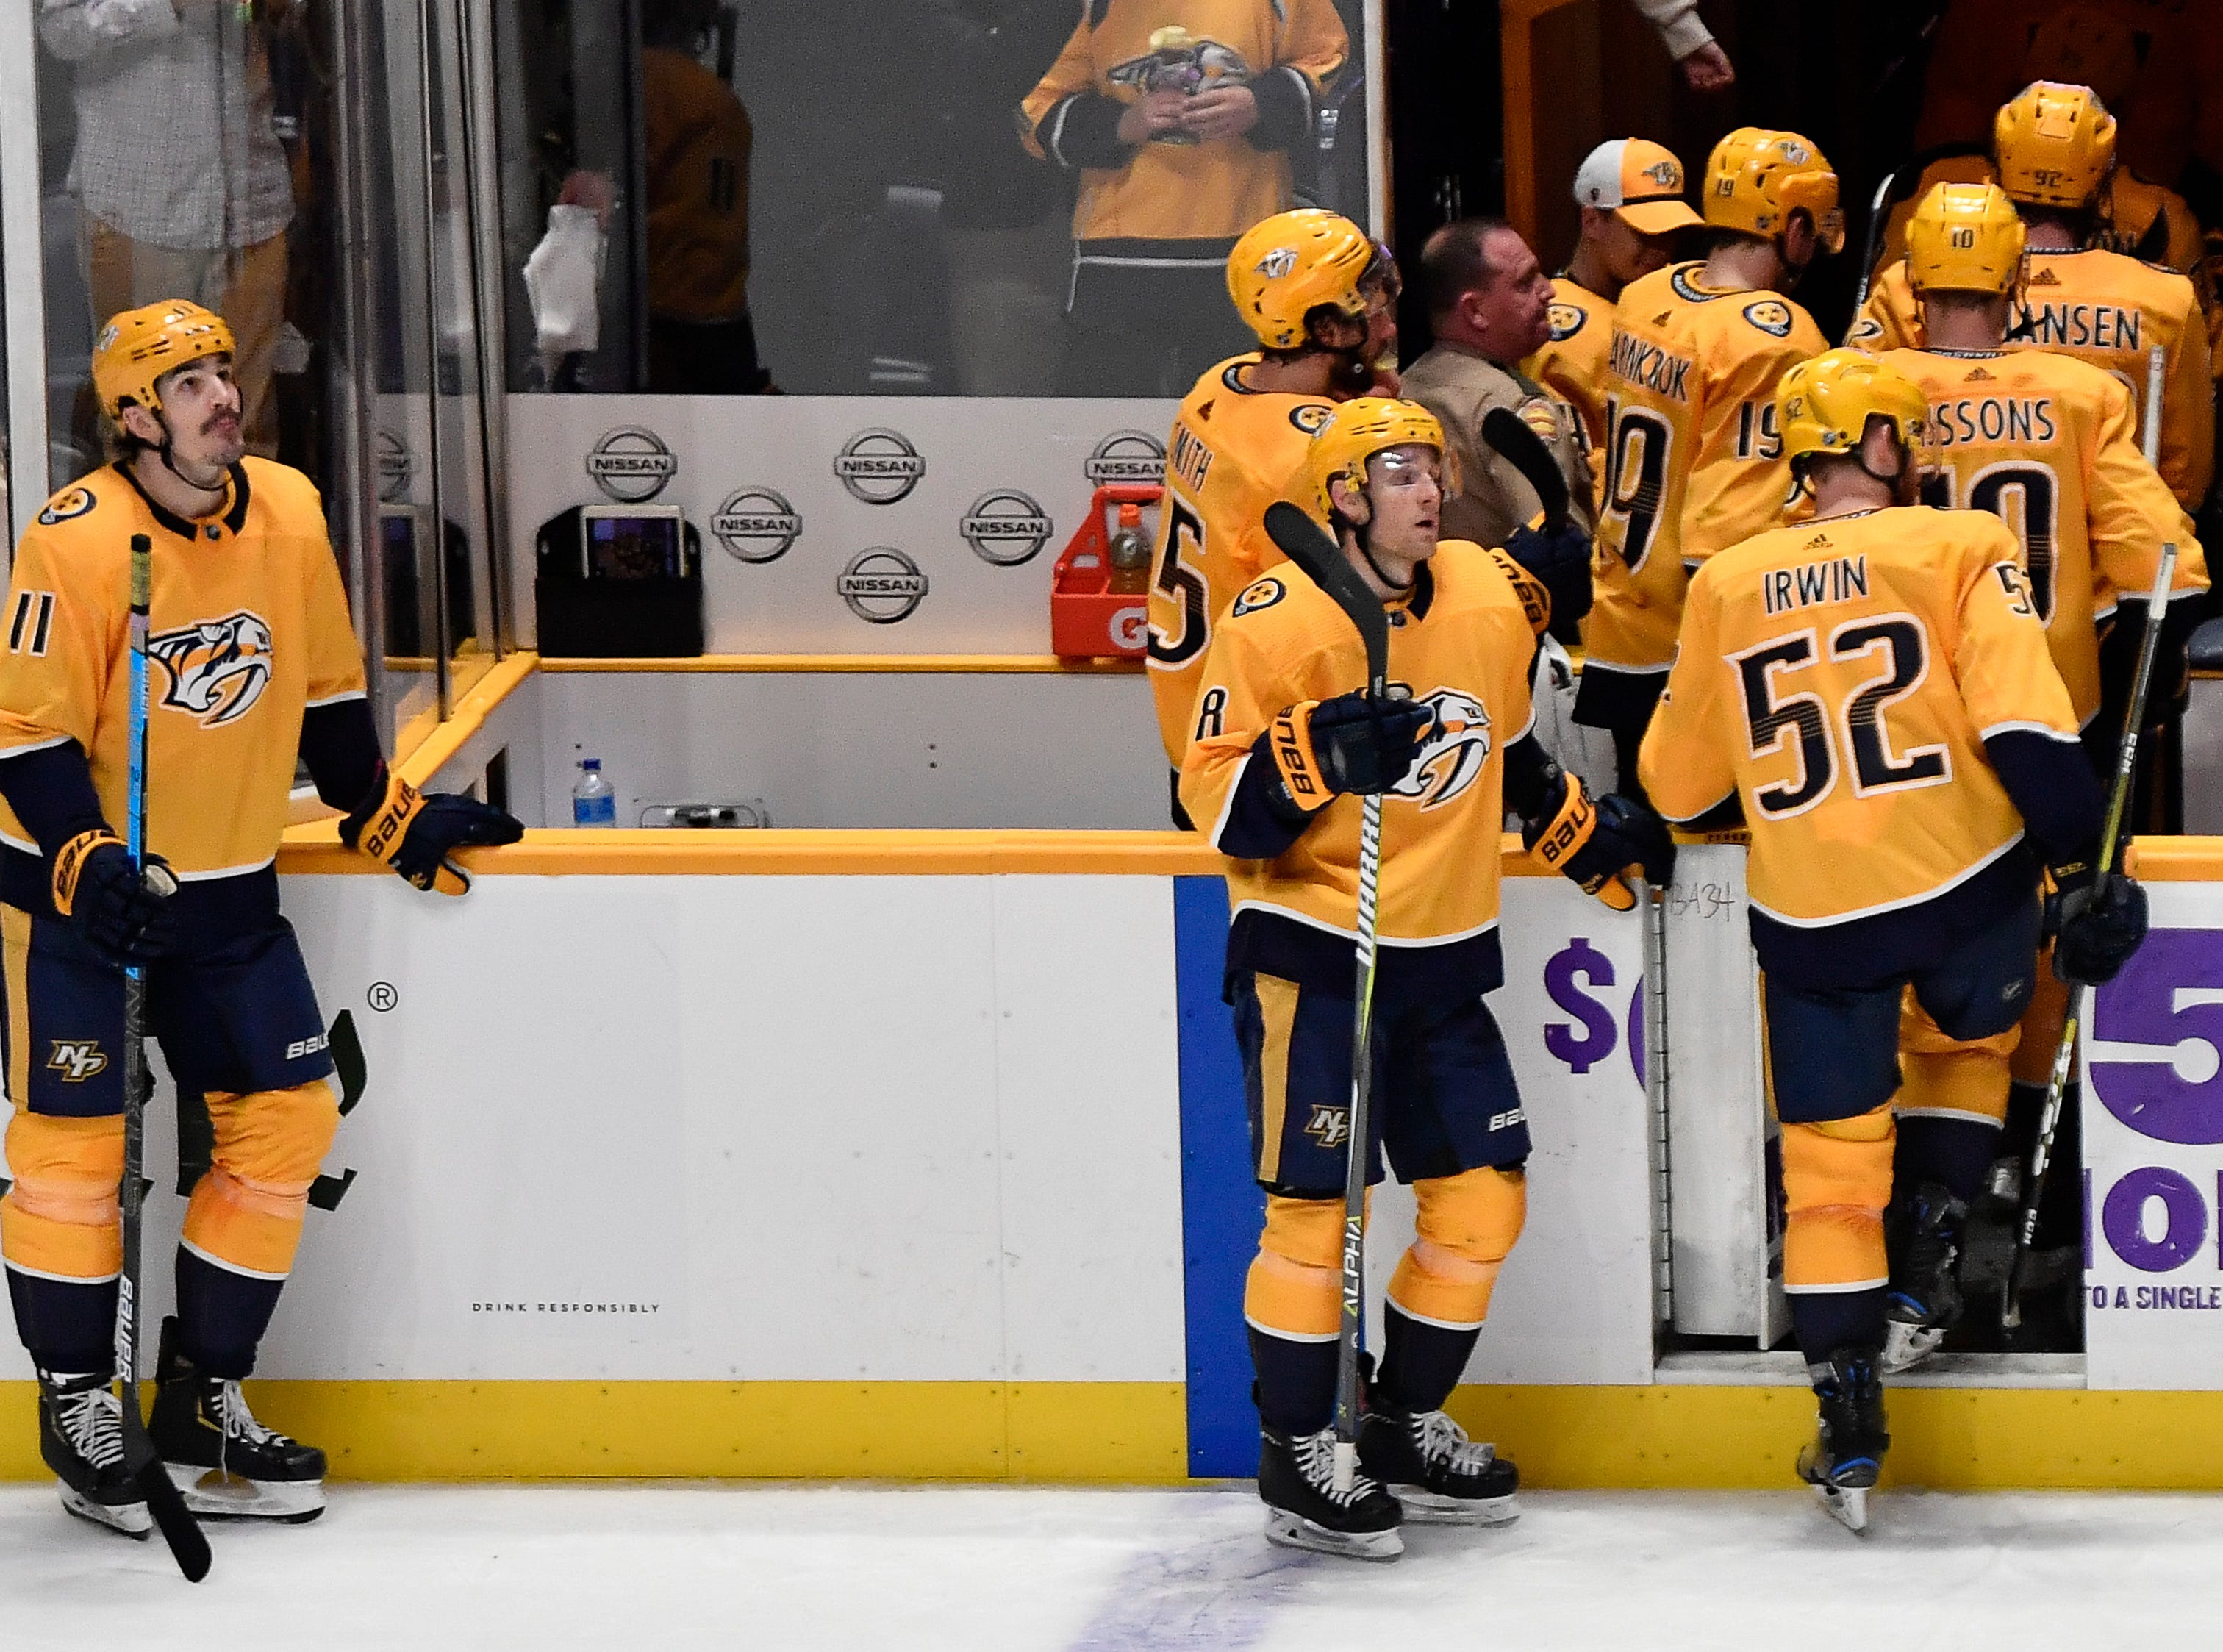 Predators leave the ice after losing to the Penguins in a shootout at Bridgestone Arena Thursday, March 21, 2019 in Nashville, Tenn.